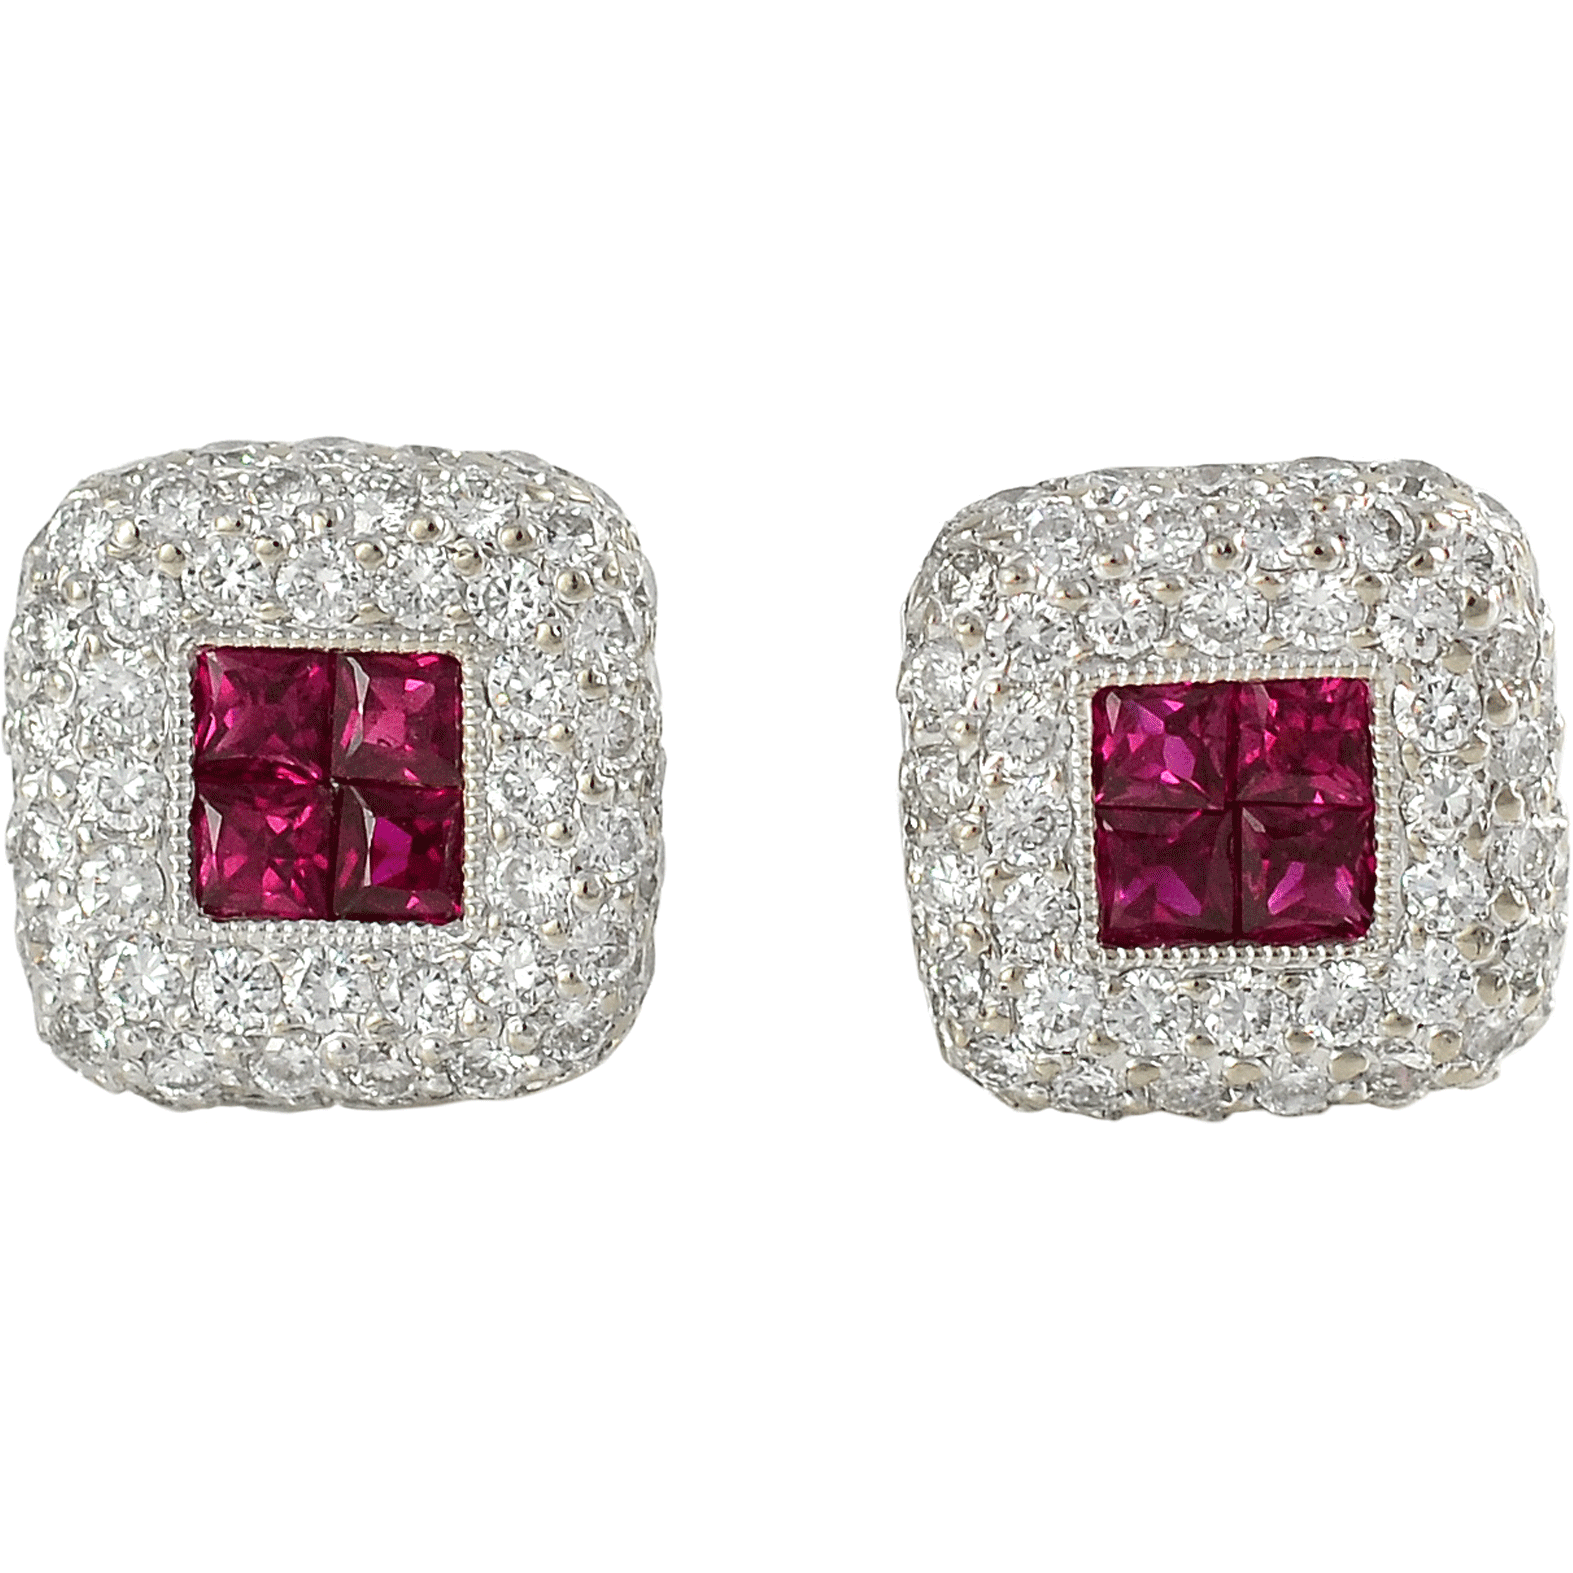 18K White Gold 1.24 CTW Diamond and Ruby Earrings